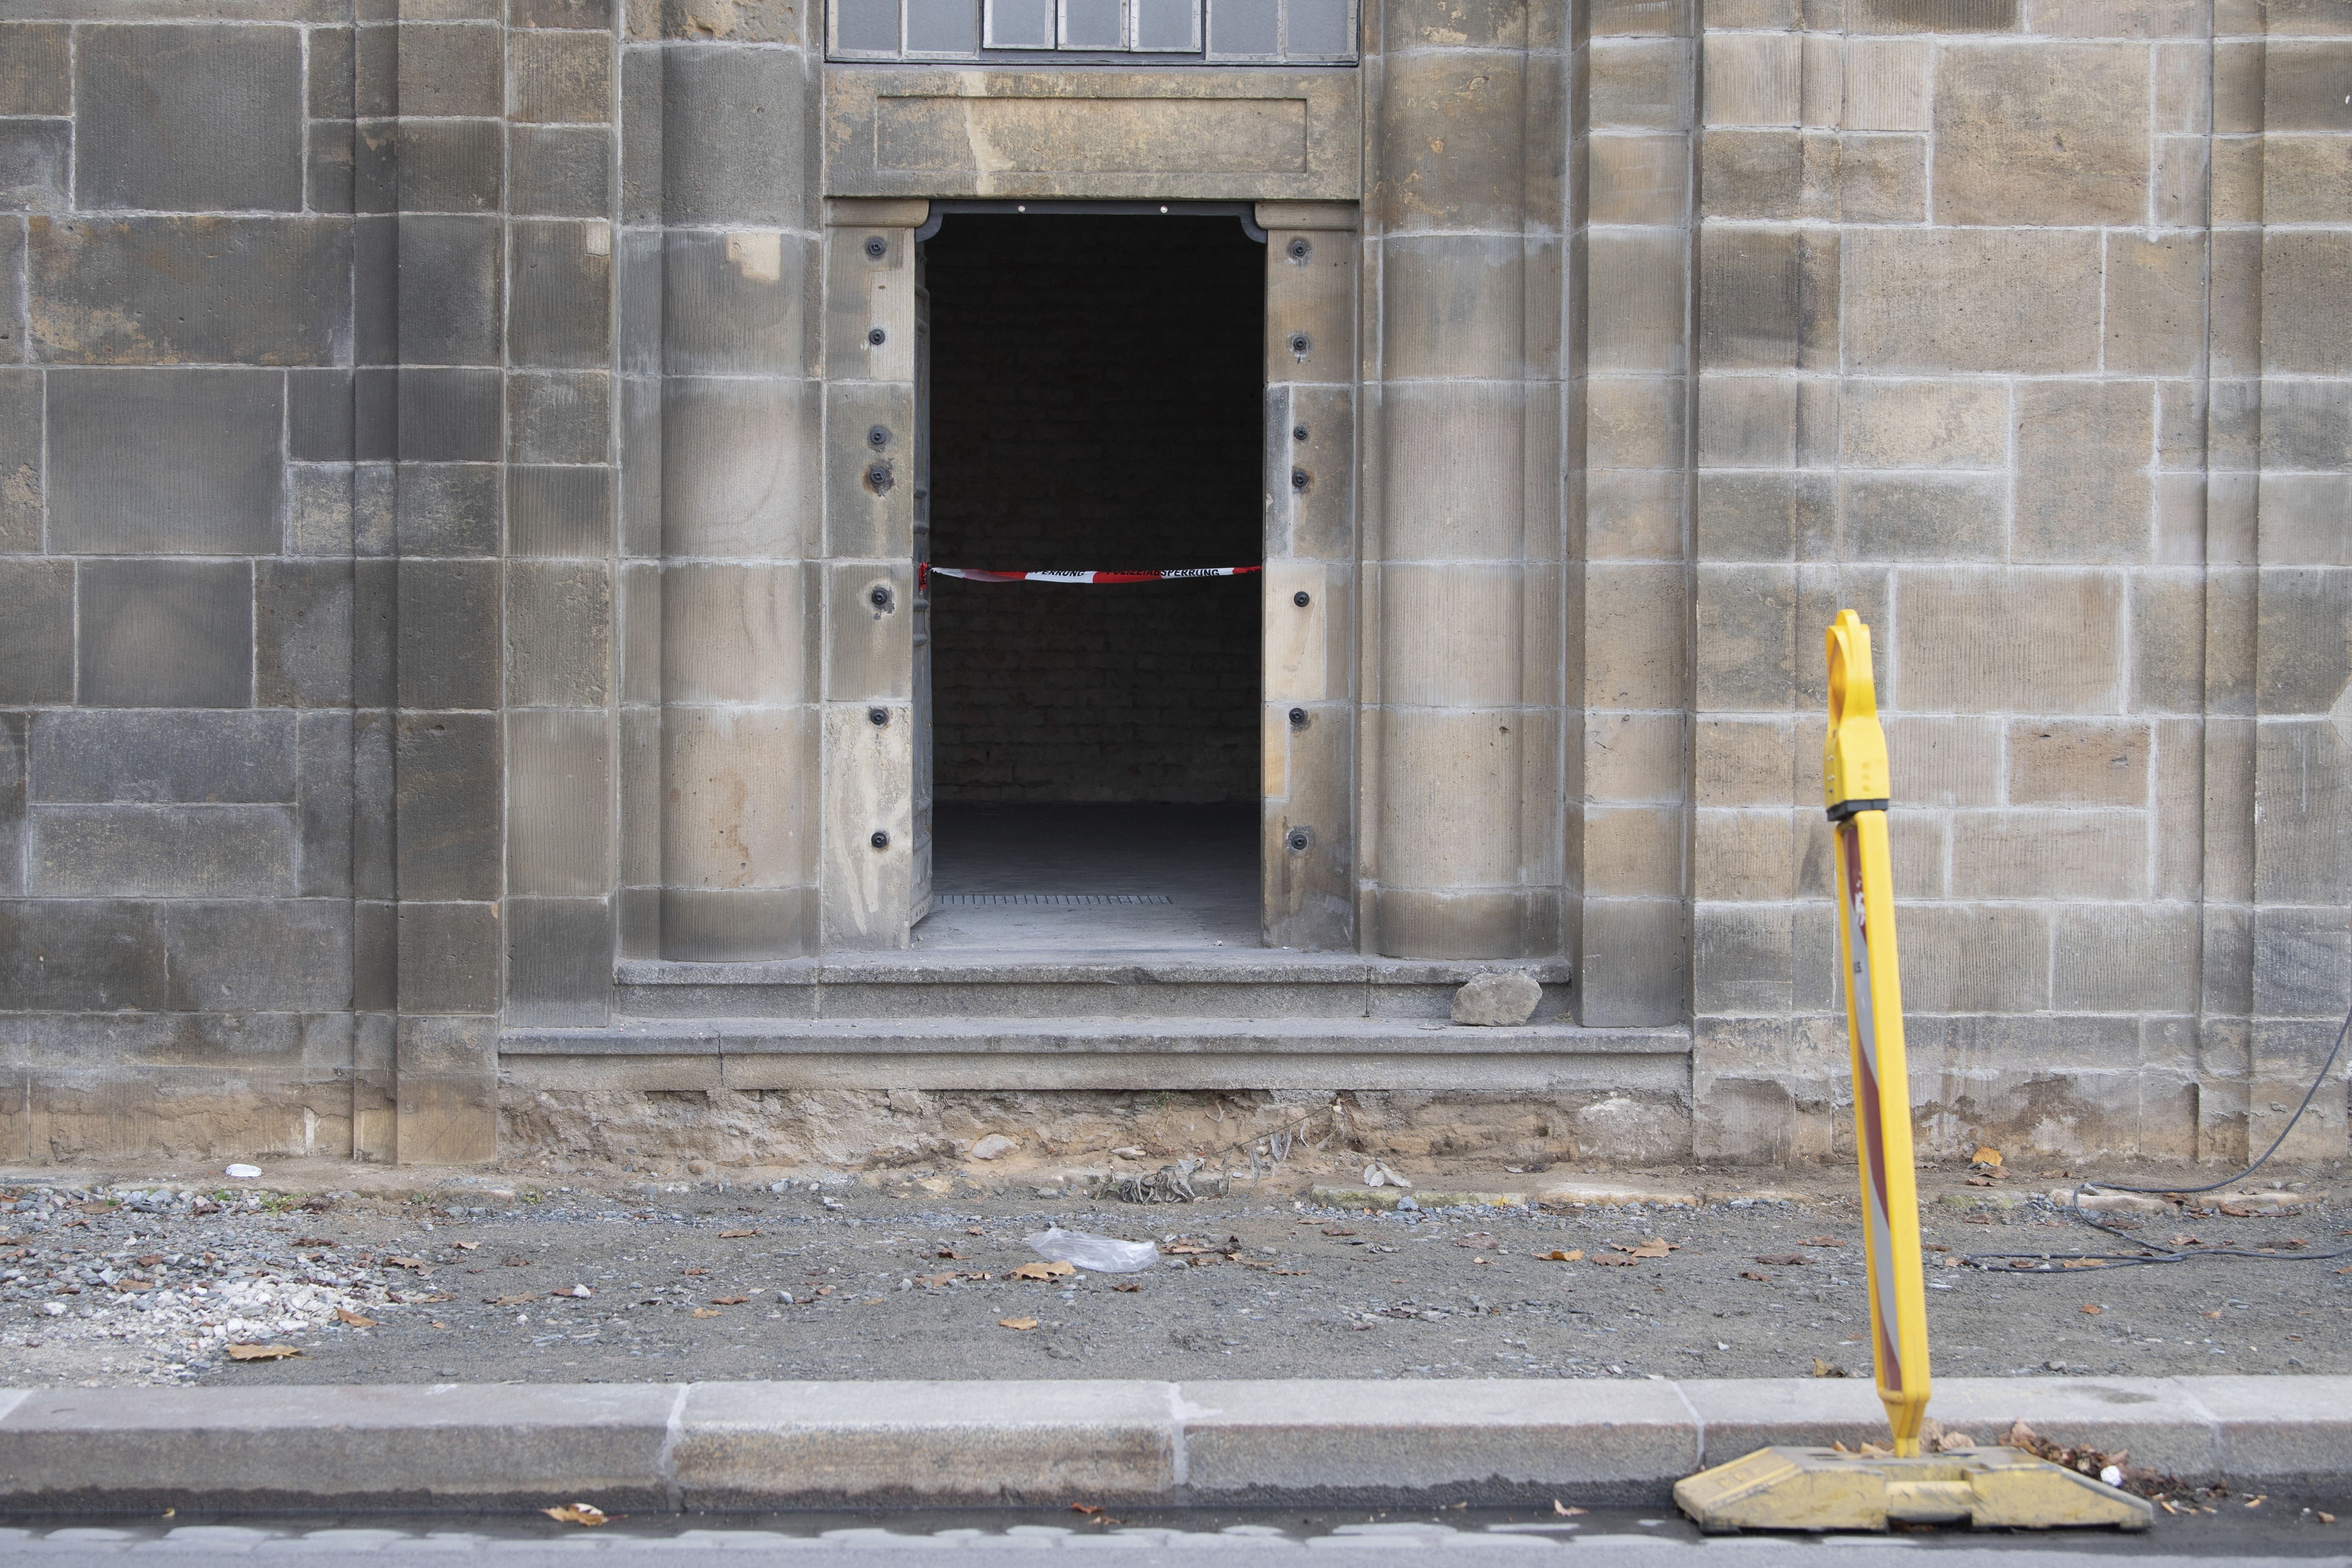 A caution tape is fixed at the entrance to catacombs under the August Bridge, where a fire destroyed the power supply for the State Art Collection with the Green Vault in Dresden, Germany, Monday, Nov. 25, 2019. Authorities in Germany say thieves have carried out a brazen heist at Dresden's Green Vault, one of the world's oldest museum containing priceless treasures from around the world. (Sebastian Kahnert/dpa via AP)